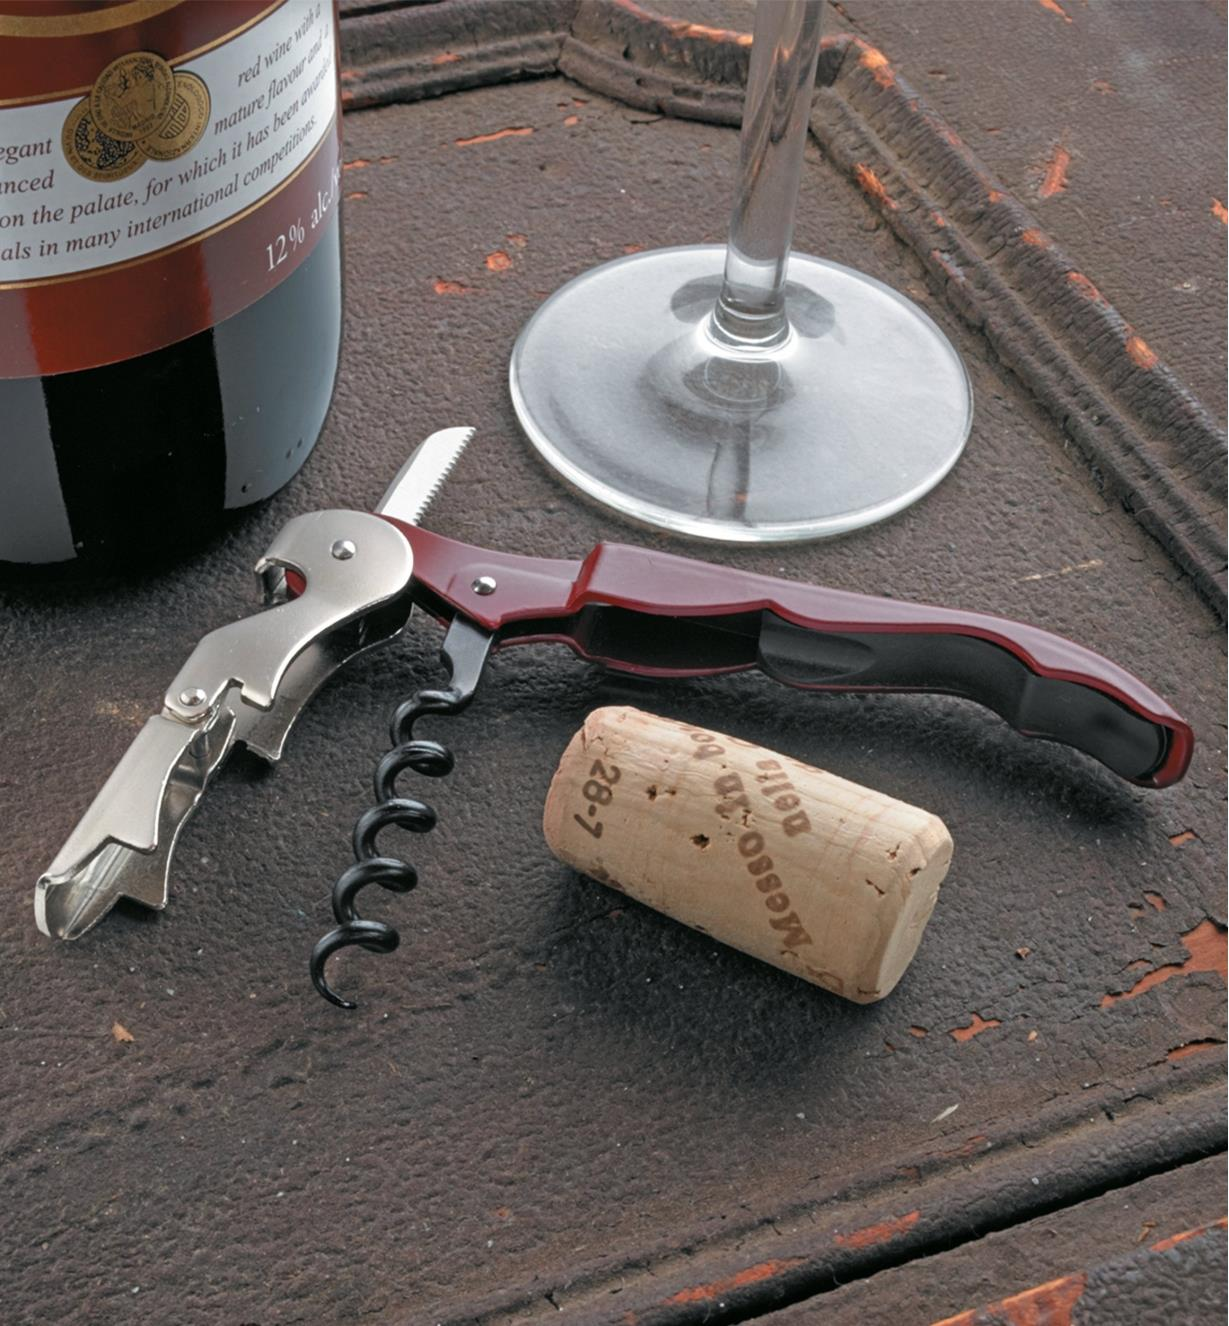 Pulltap Double-Lever Corkscrew lying next to a cork, a wine bottle and a glass